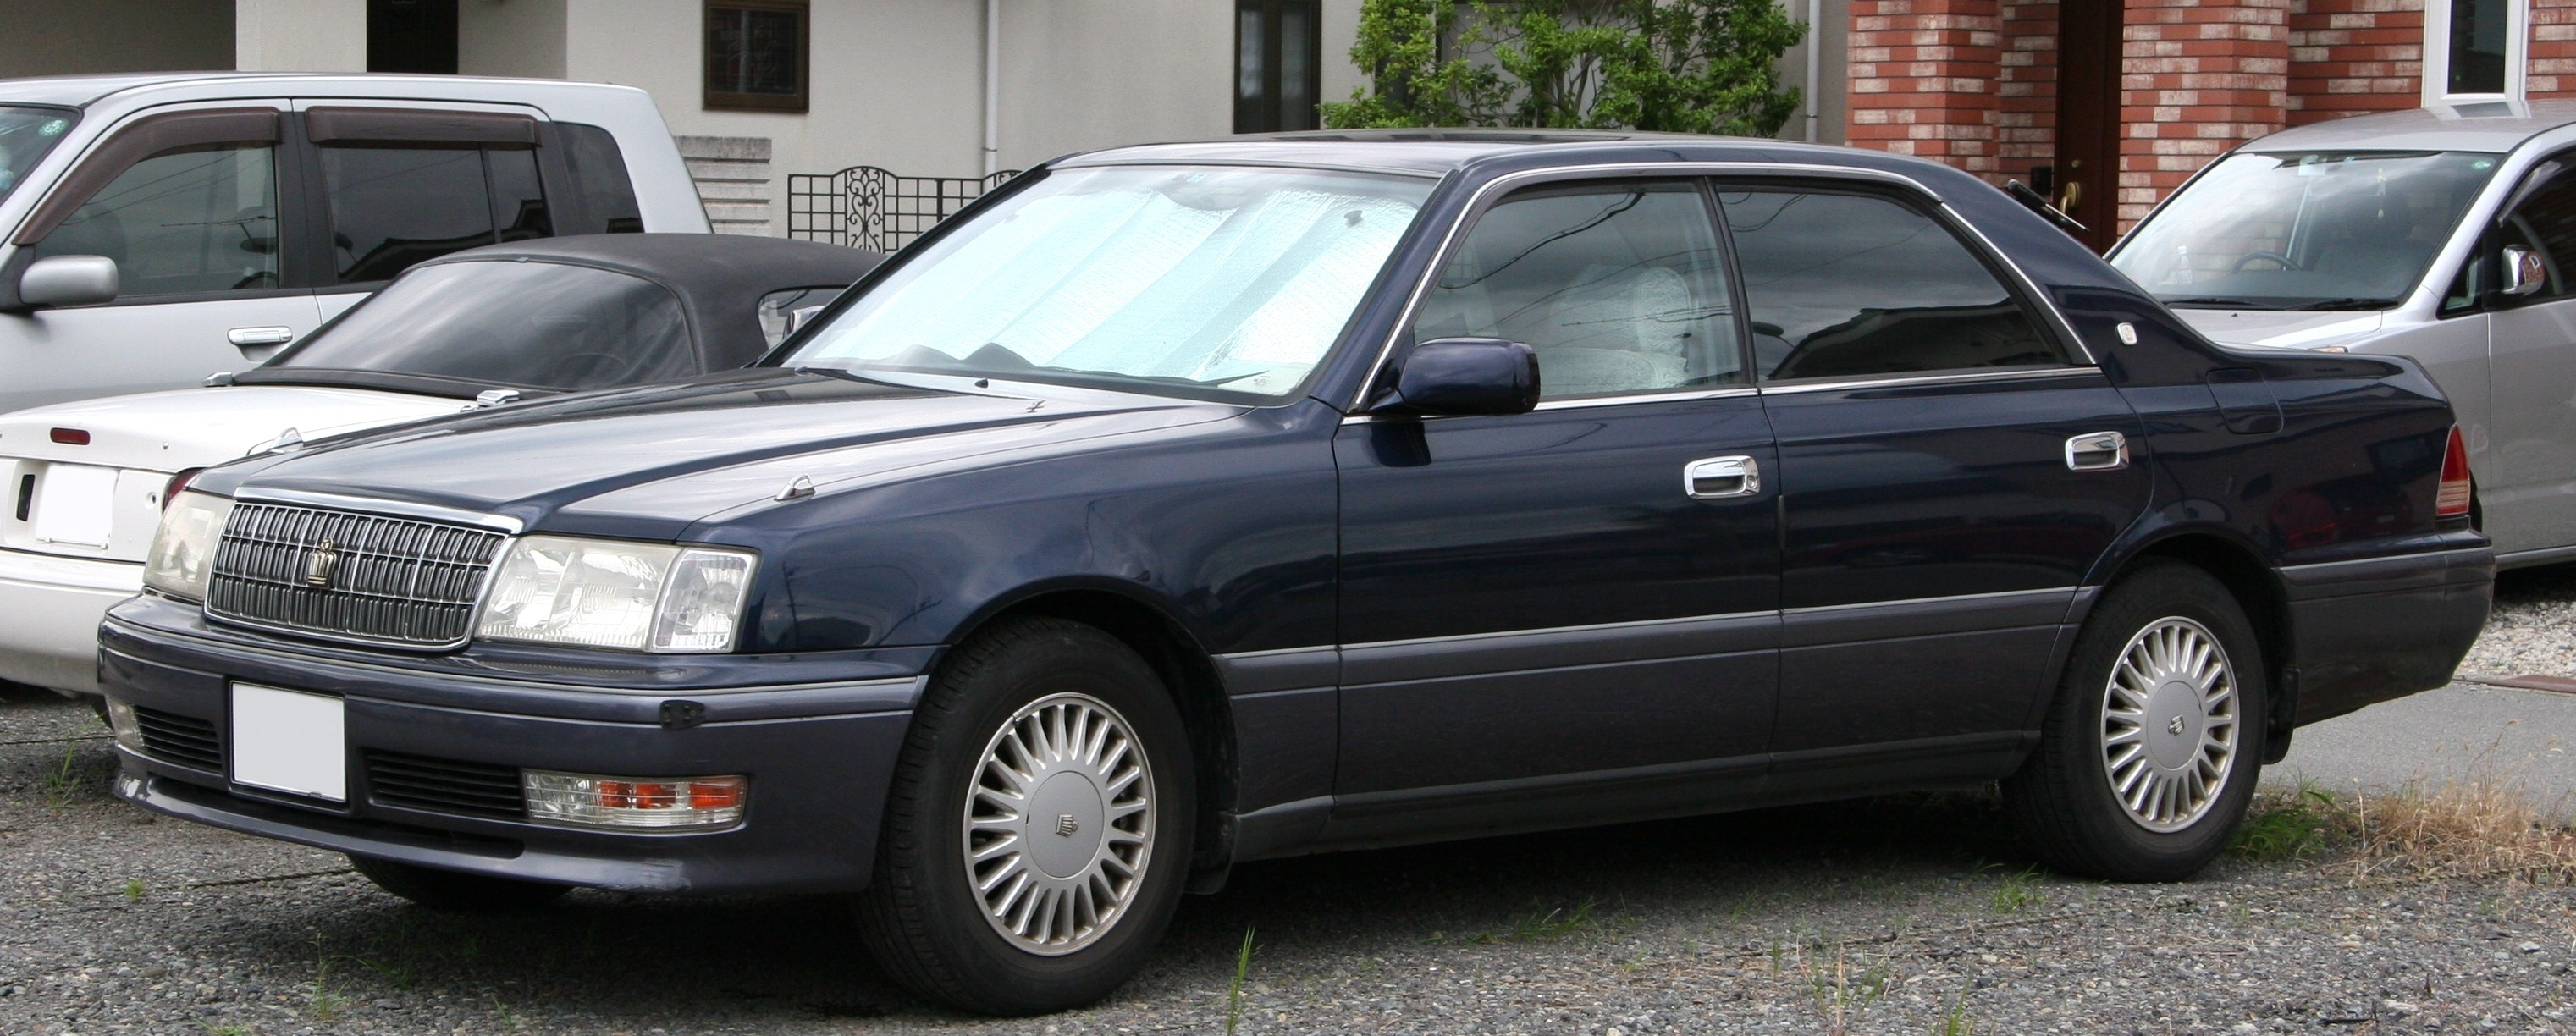 Description 1997-1999 Toyota Crown Royal Saloon.jpg